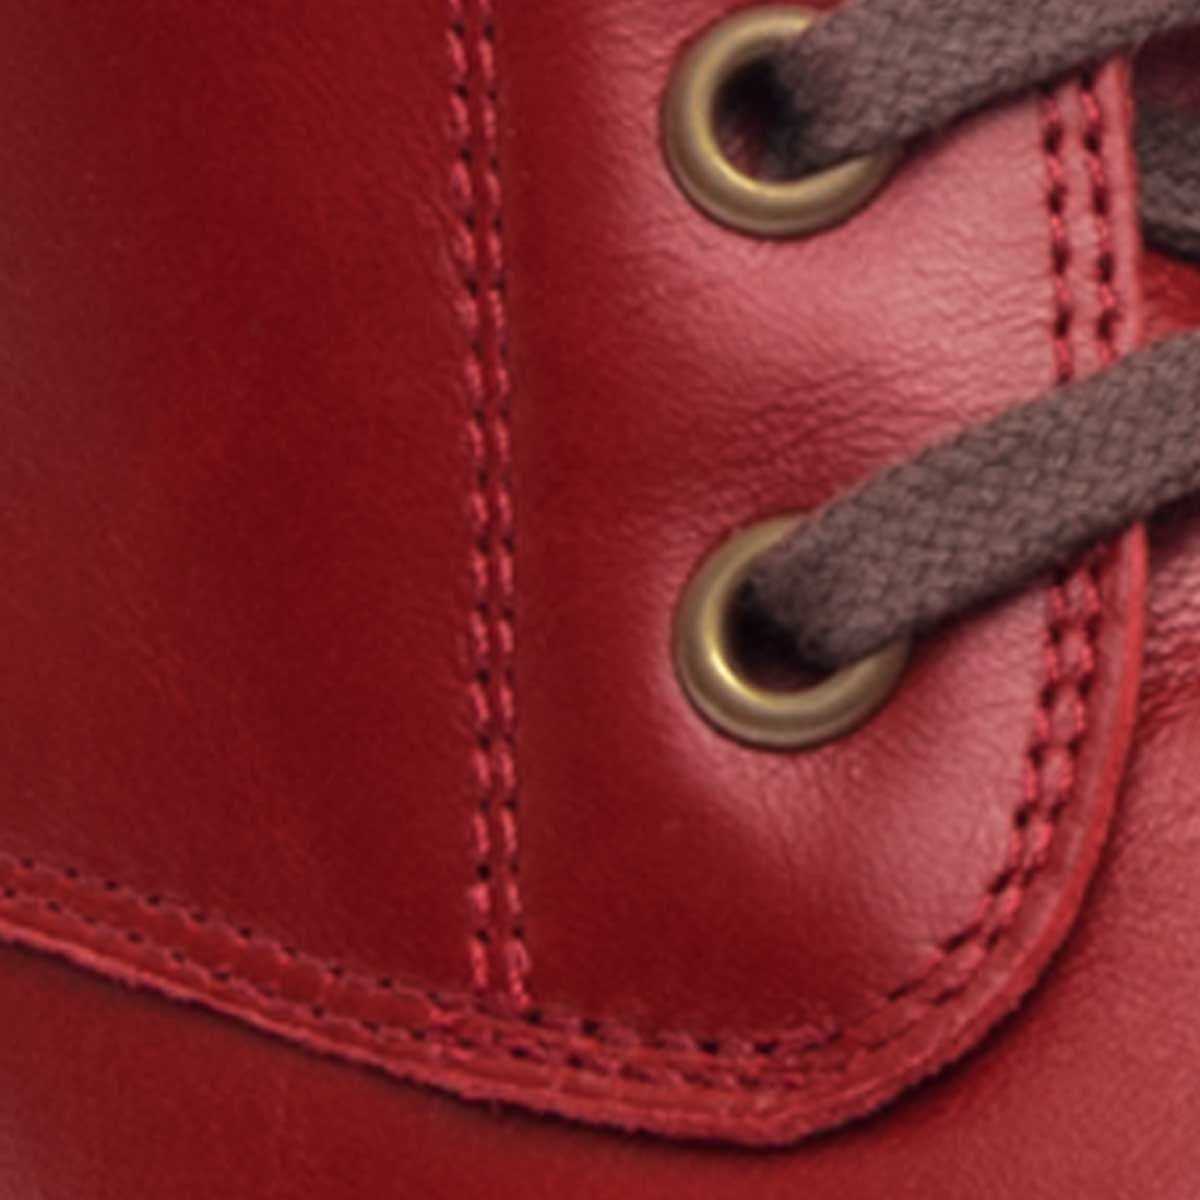 Purapiel Lace Up Ankle Boot in Red